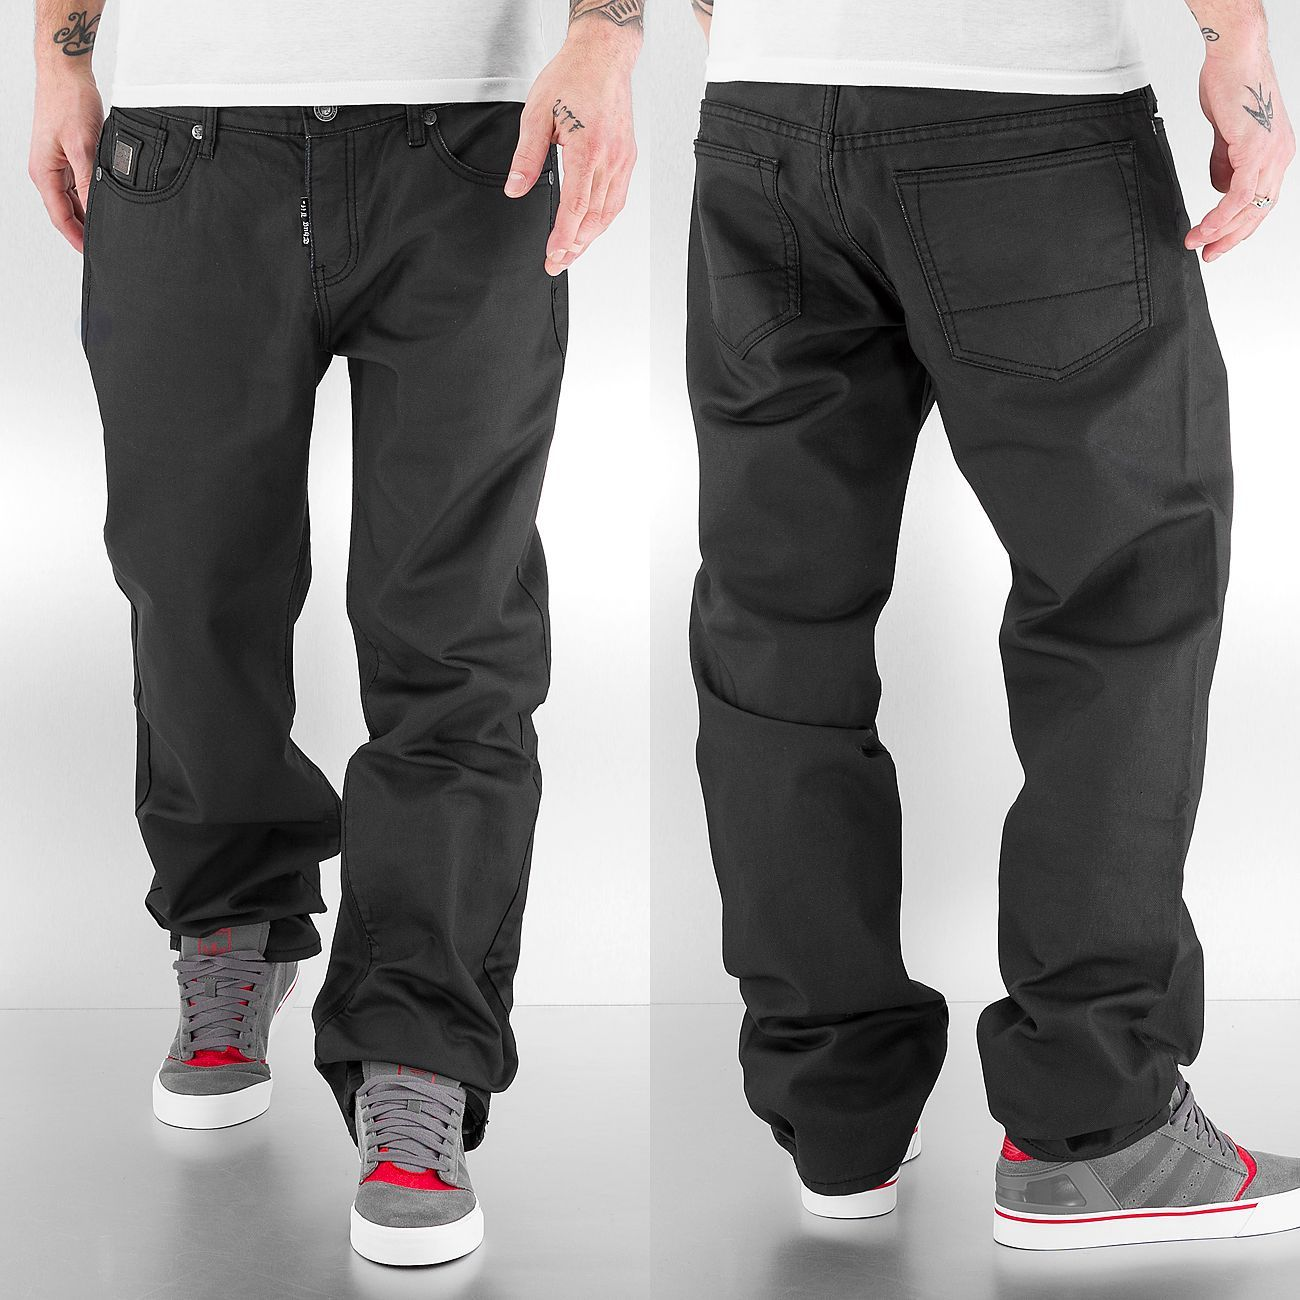 Http Www Def Shop Fr Mens Outfits Jeans Outlet Dickies Pants